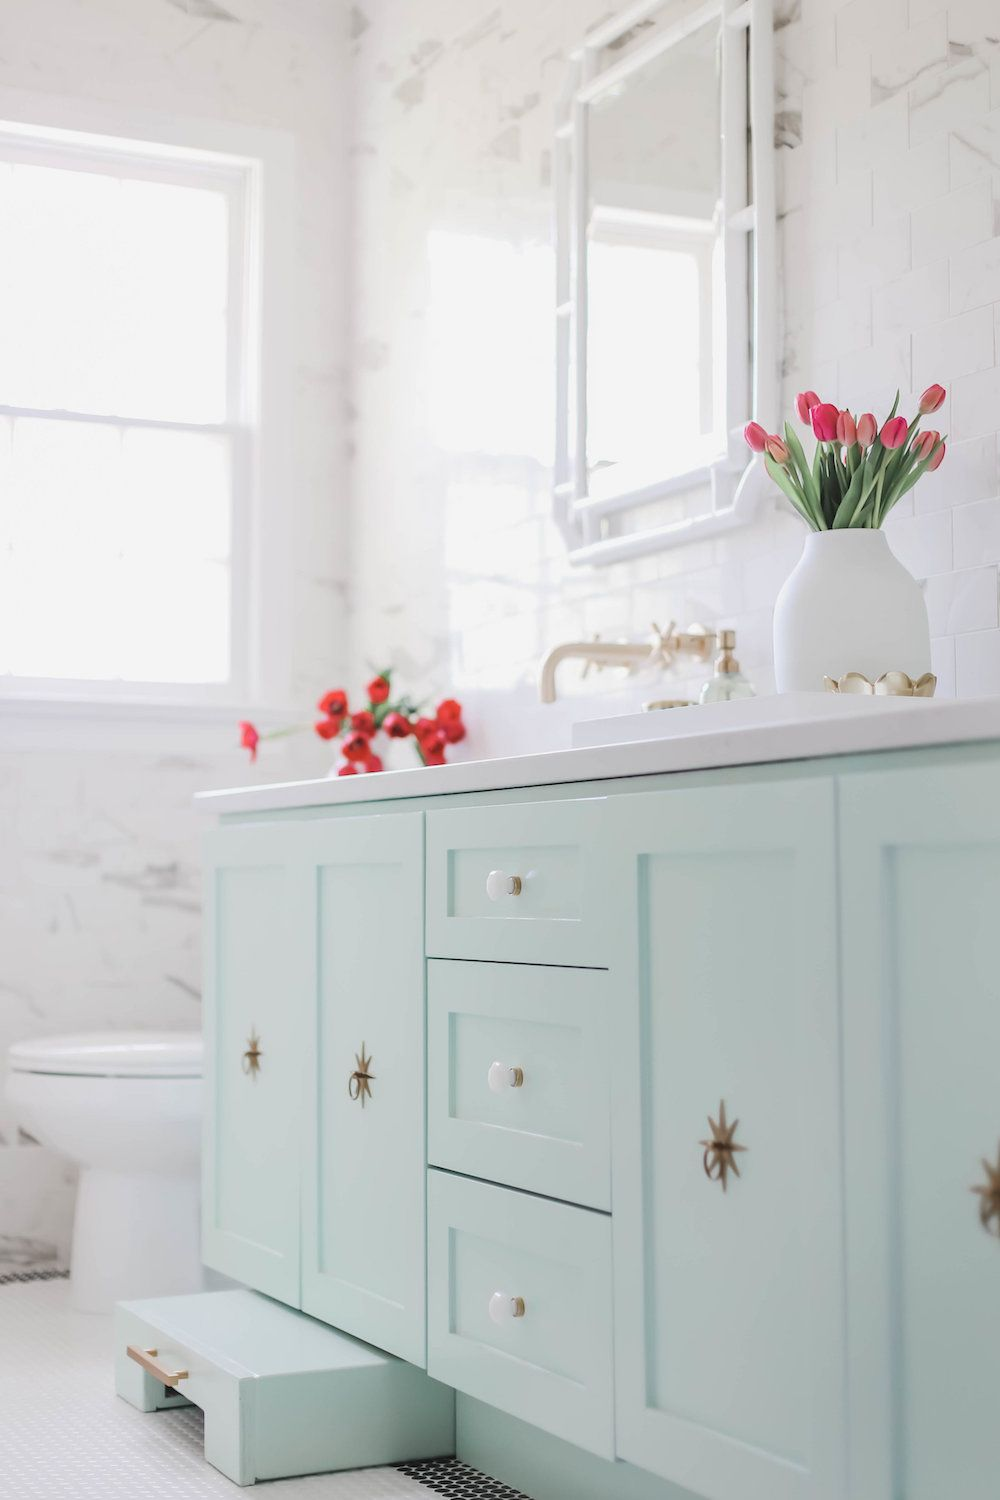 Tour A Bright Kids Bath Done Right With Our Starburst Hardware